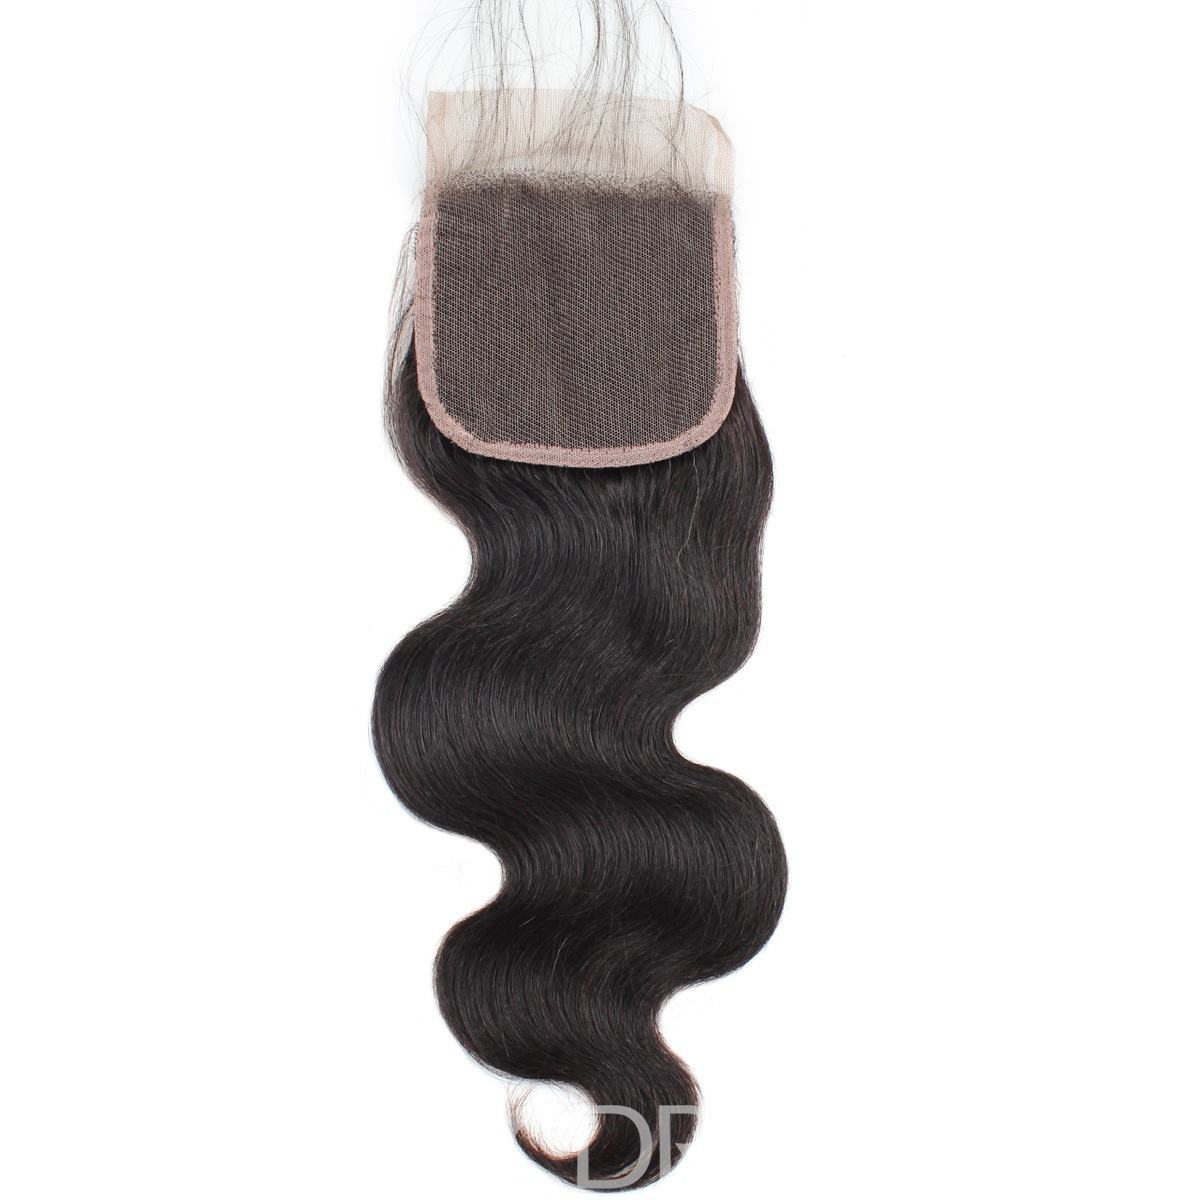 Ericdress Brazilian Body Wave Hair Bundles Virgin Human Hair Extensions + Lace Closure